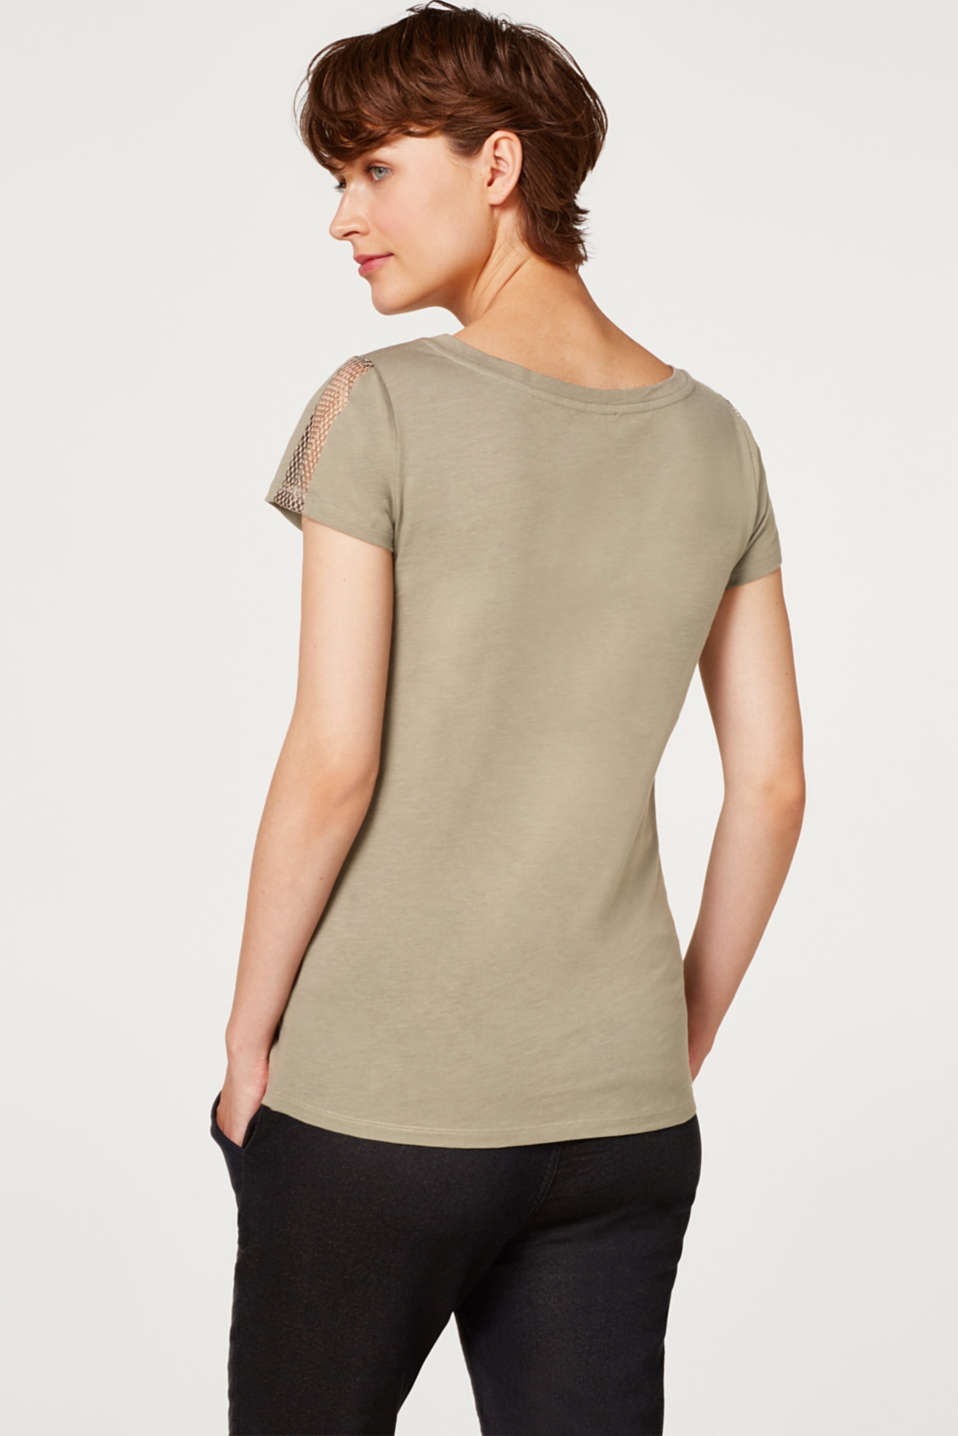 Net detail T-shirt, 100% cotton, LCREAL OLIVE, detail image number 3